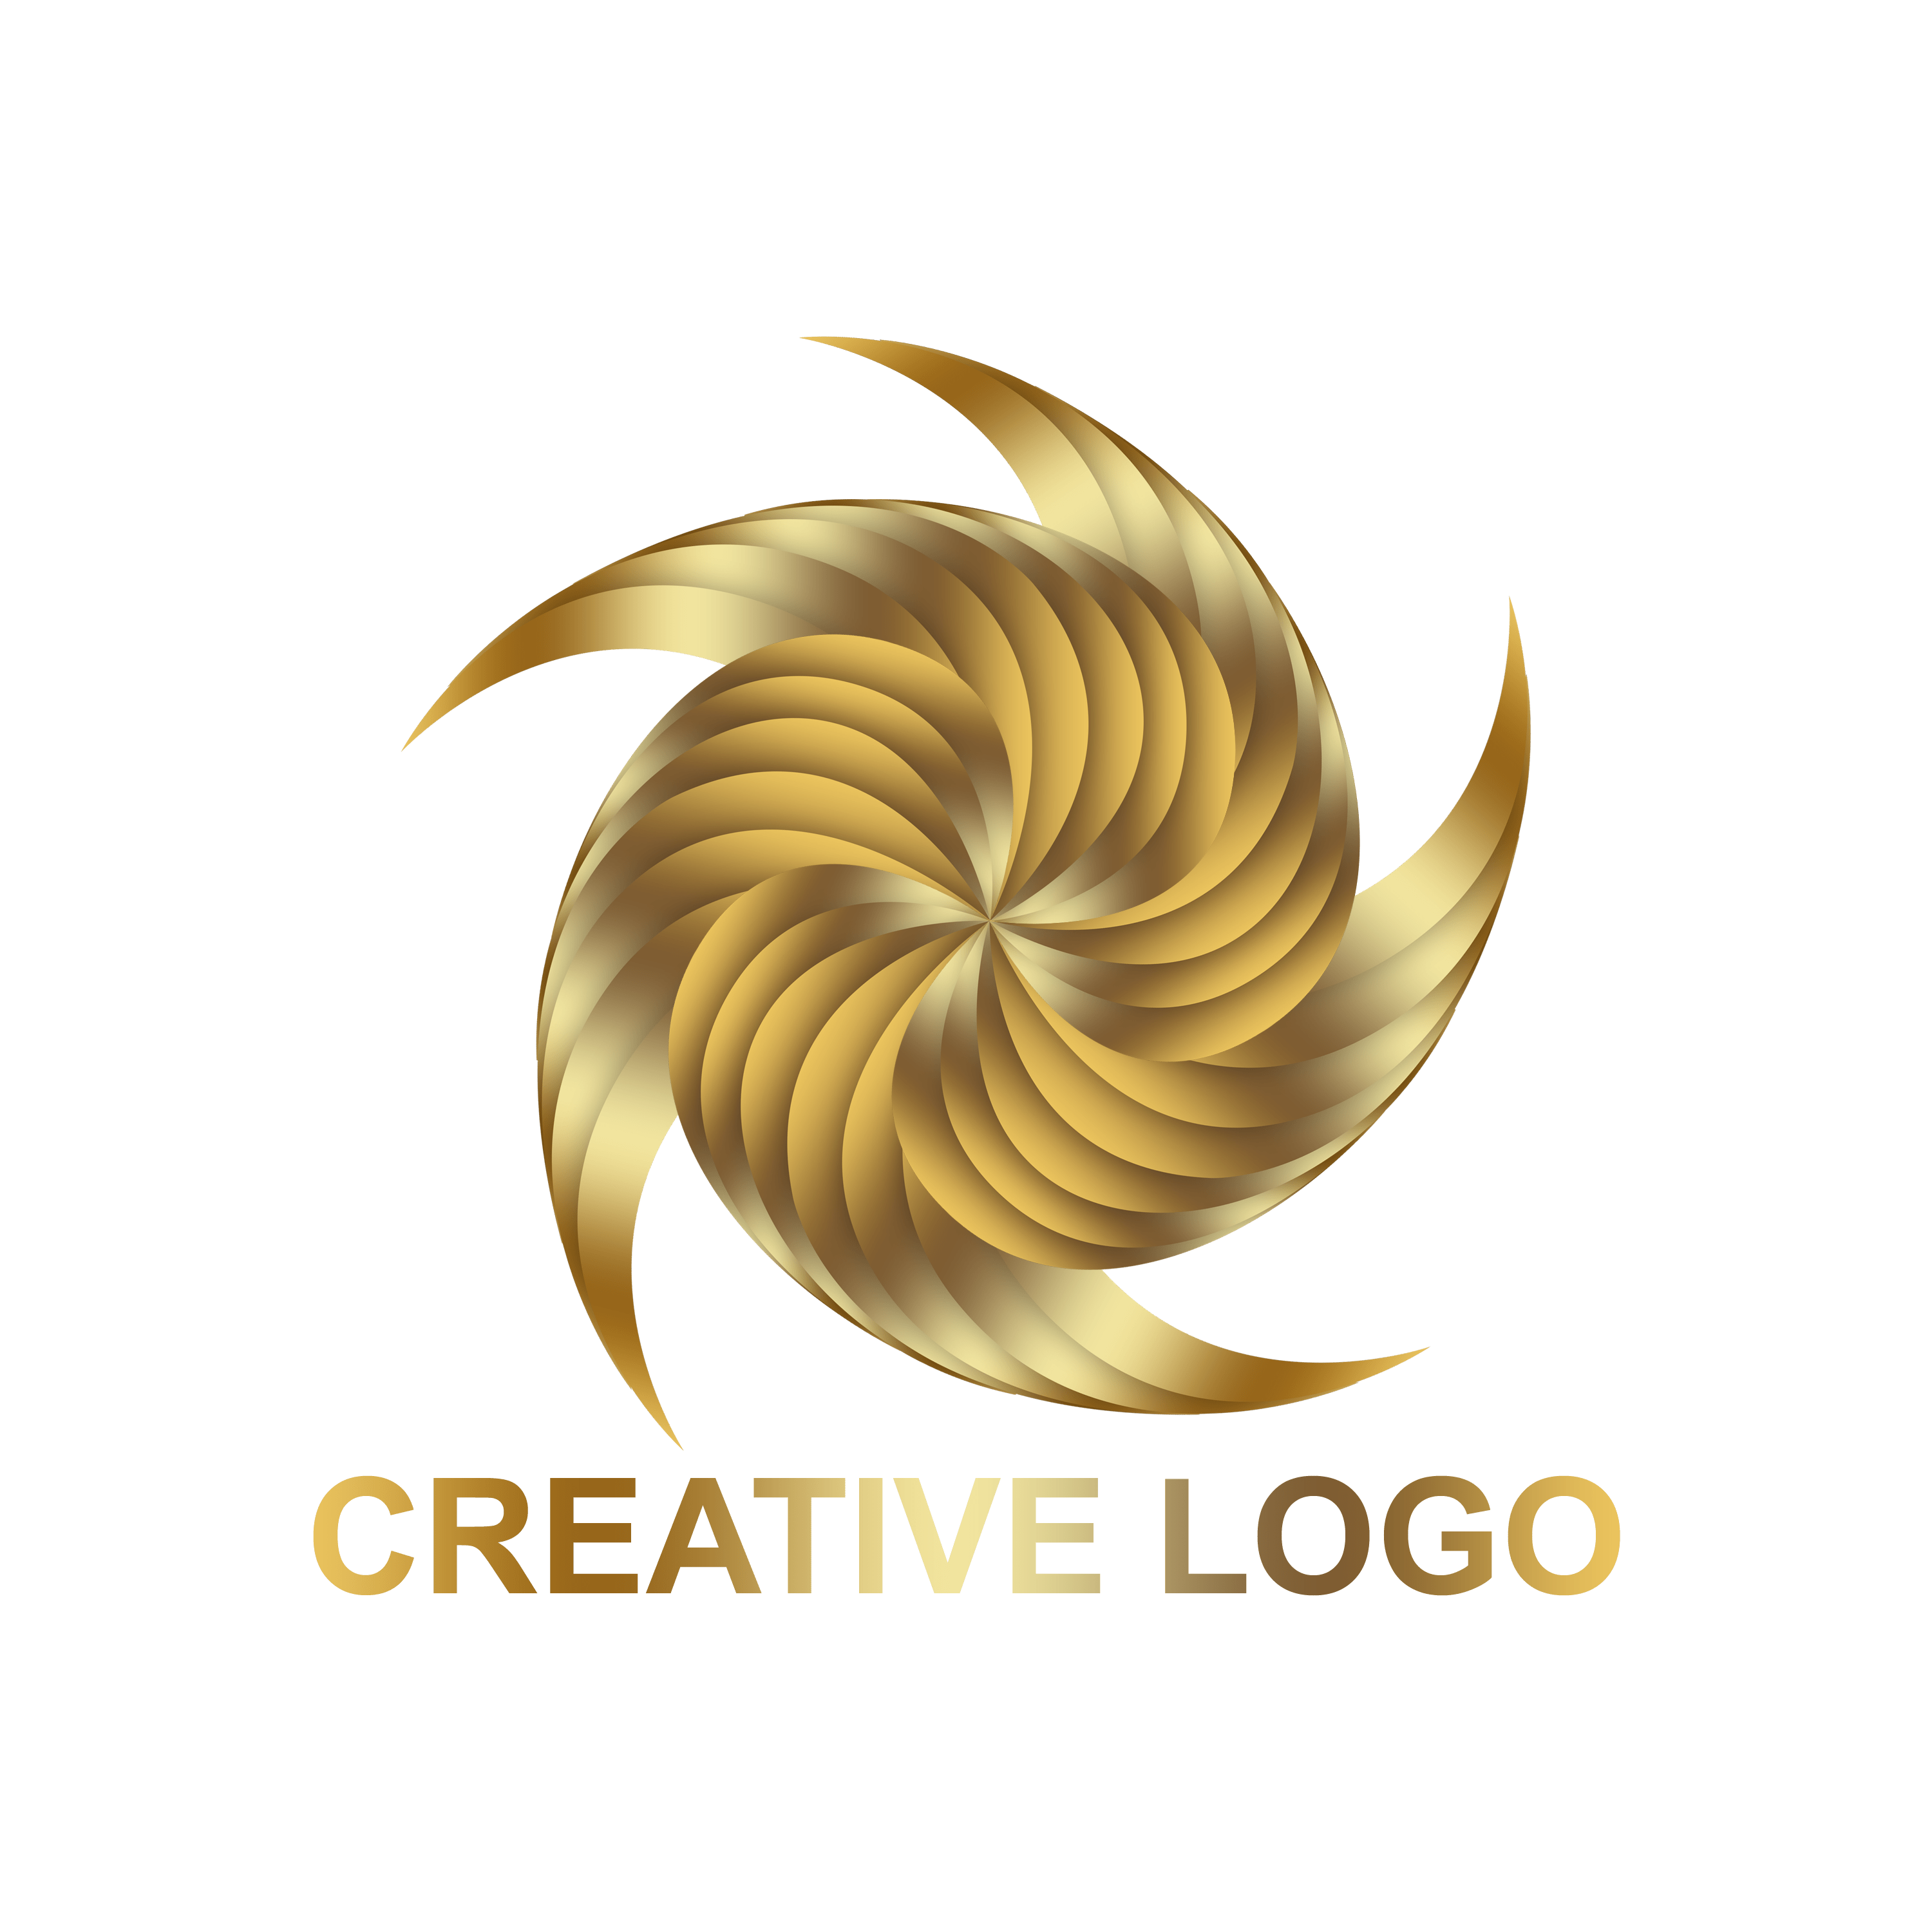 Free Creative Abstract Logo Design PNG Transparent